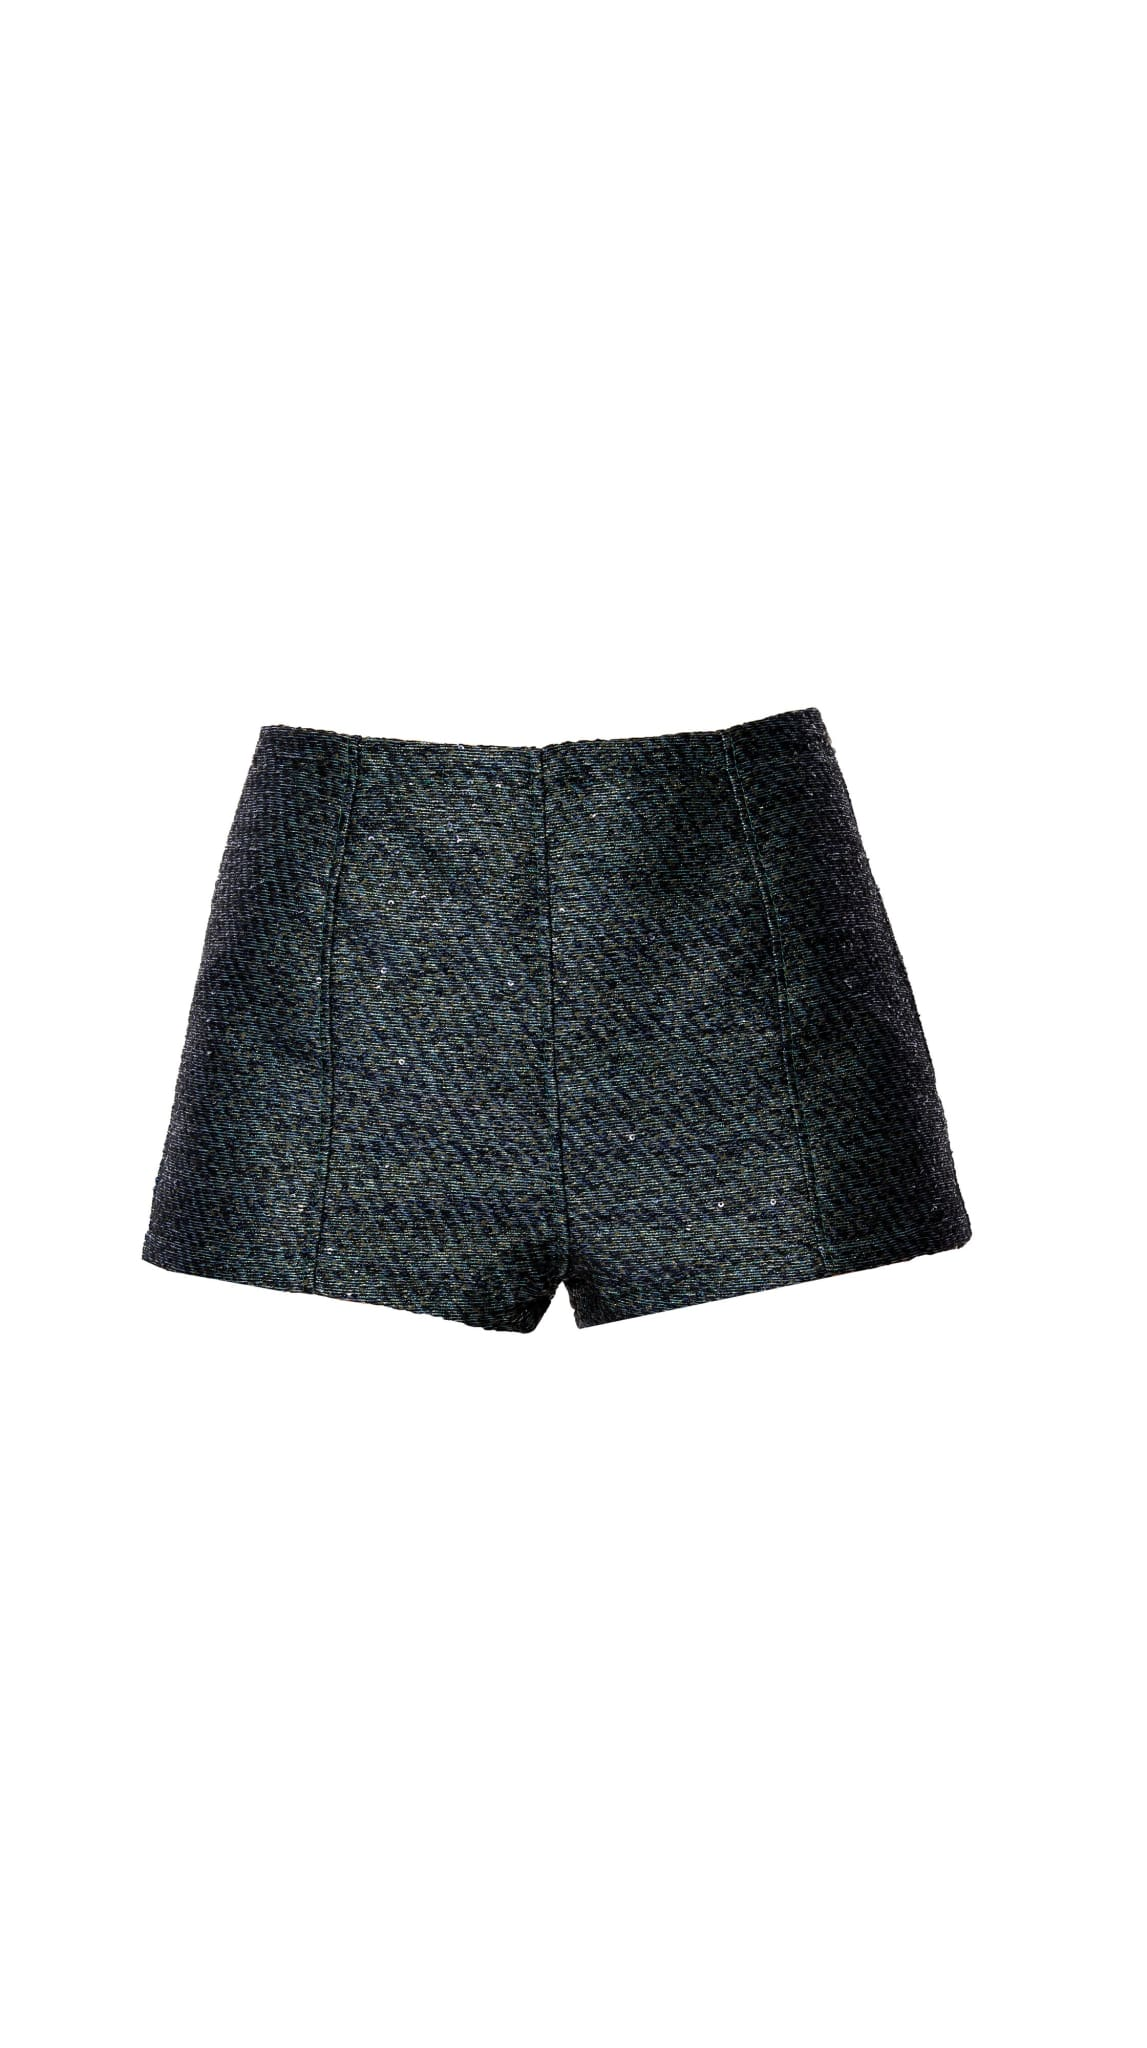 Metallic Green Grey Tap Shorts by Meghan Hughes | Nineteenth Amendment